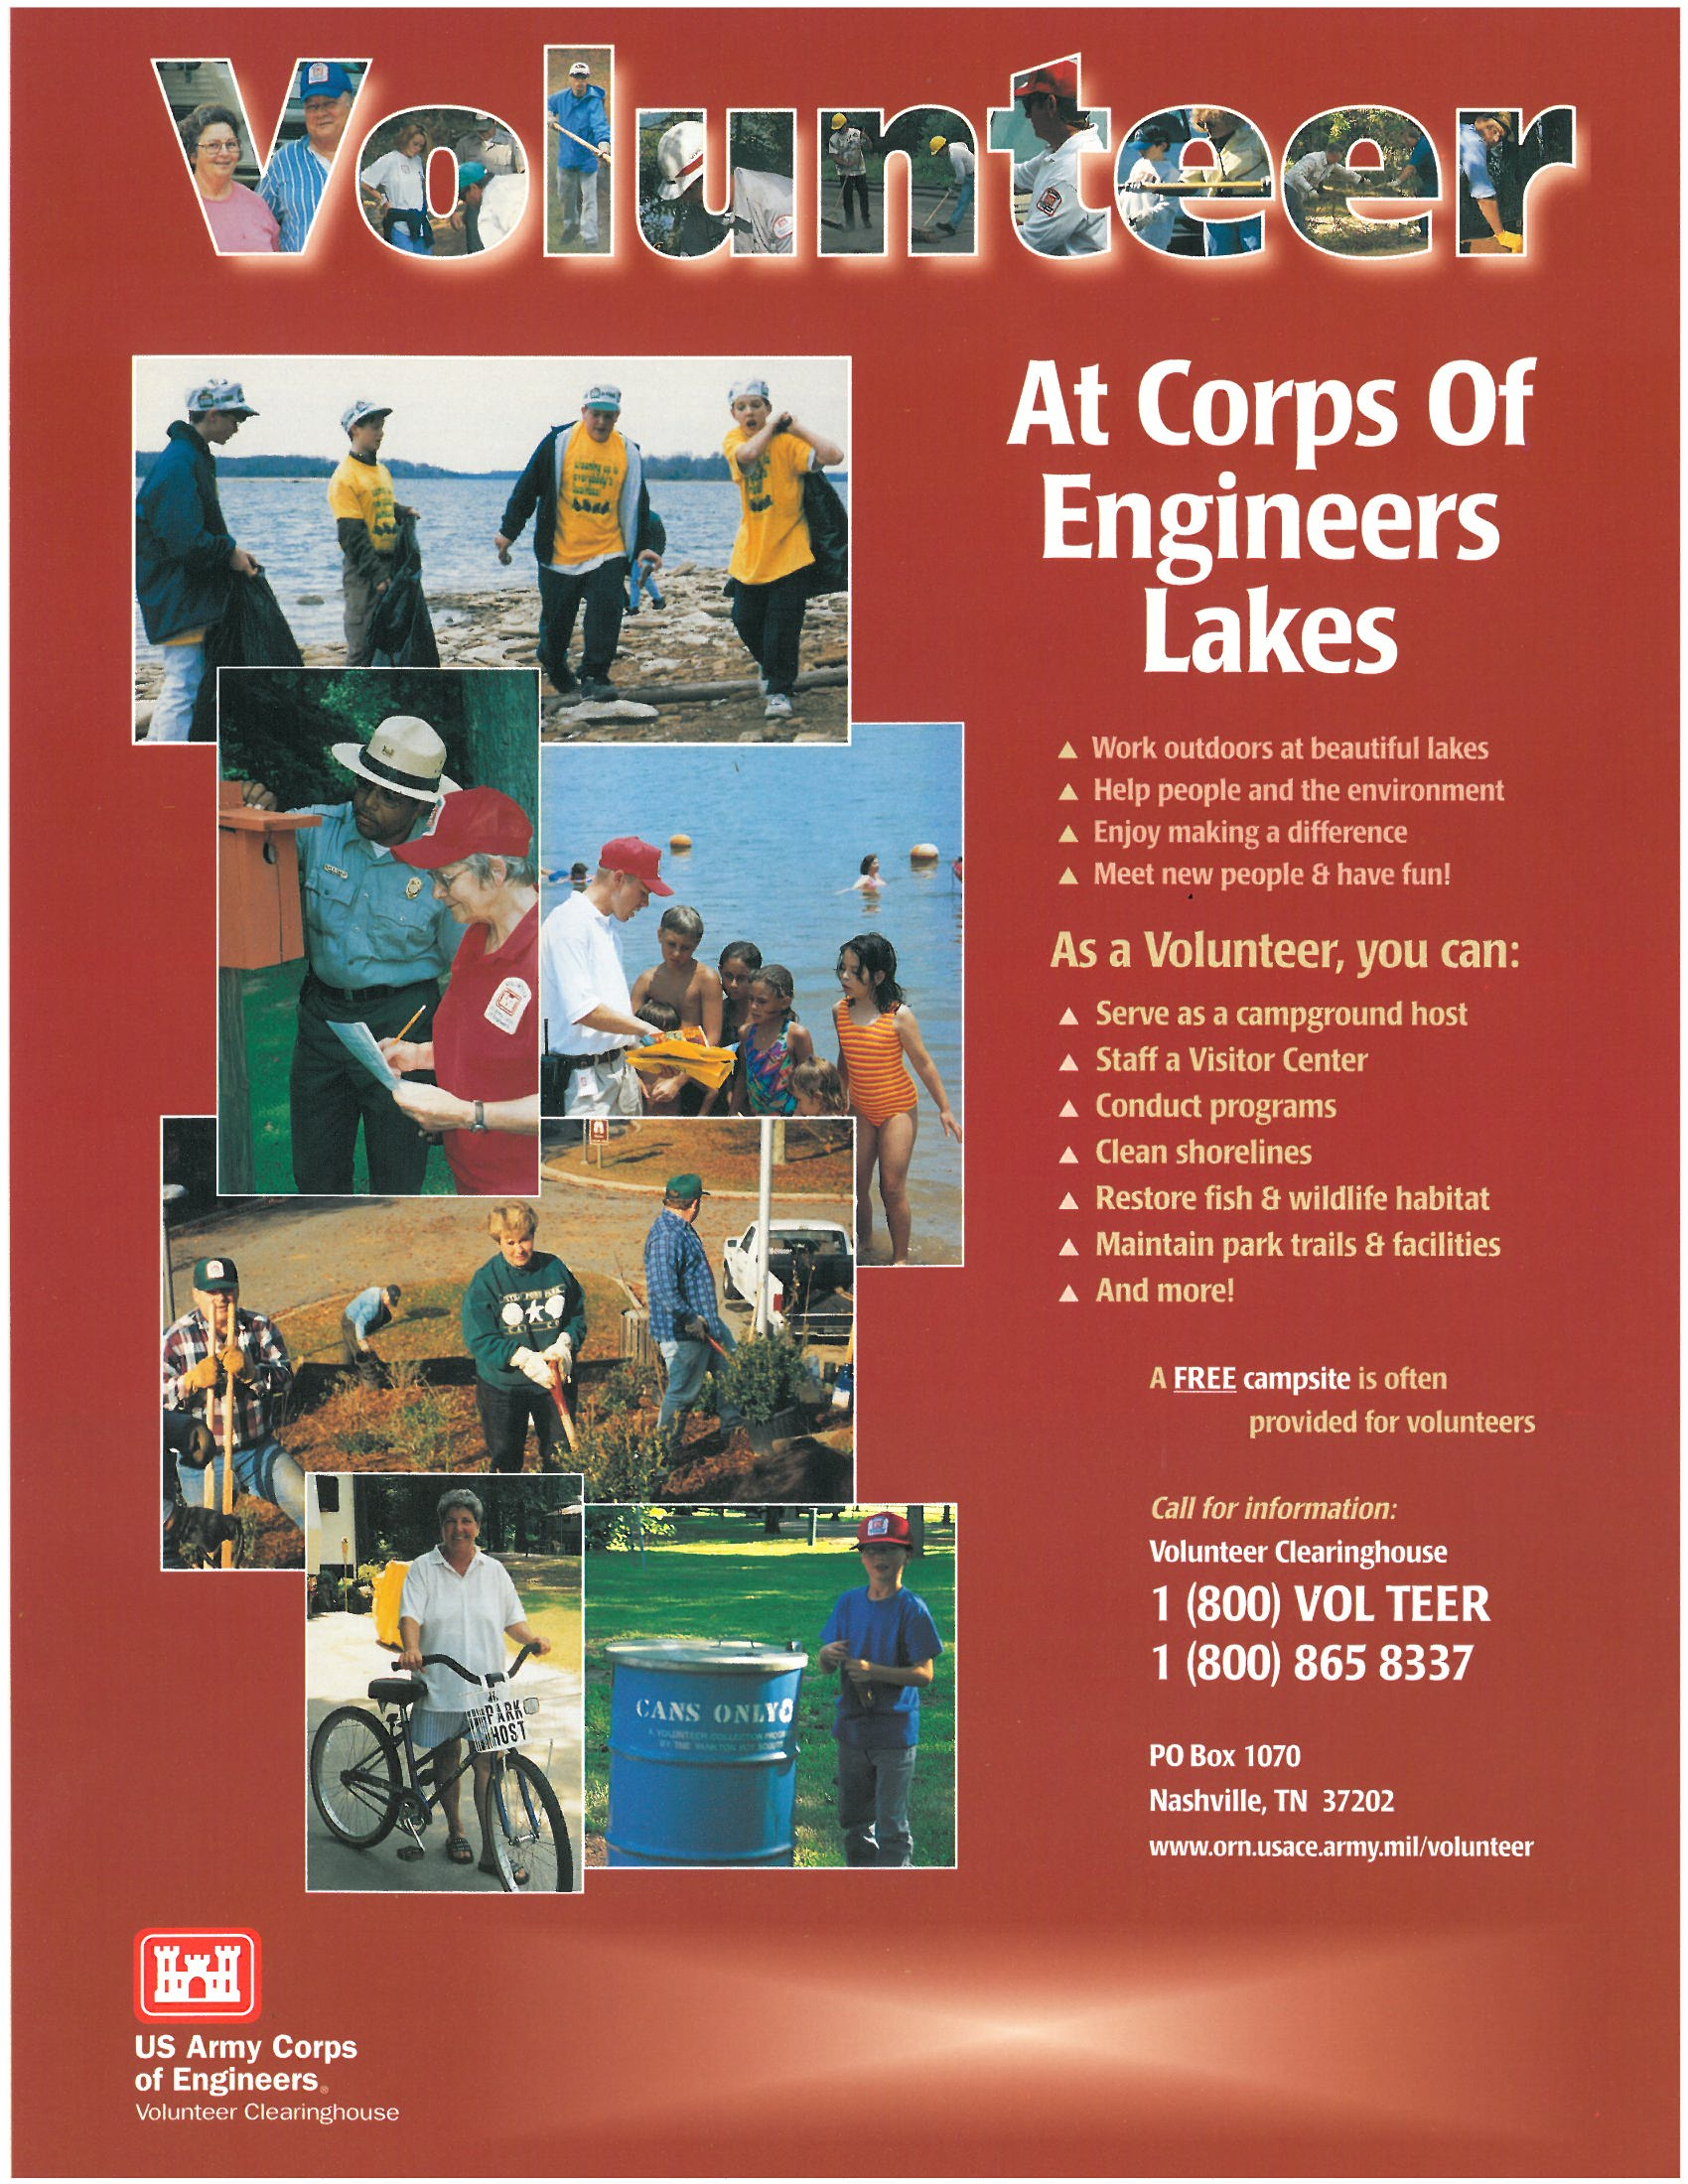 Poster design volunteer - Posters To Help Recruit Volunteers May Be Ordered By E Mailing Volunteer Clearinghouse Usace Army Mil Sizes 8 X 11 11 X17 And 18 X24